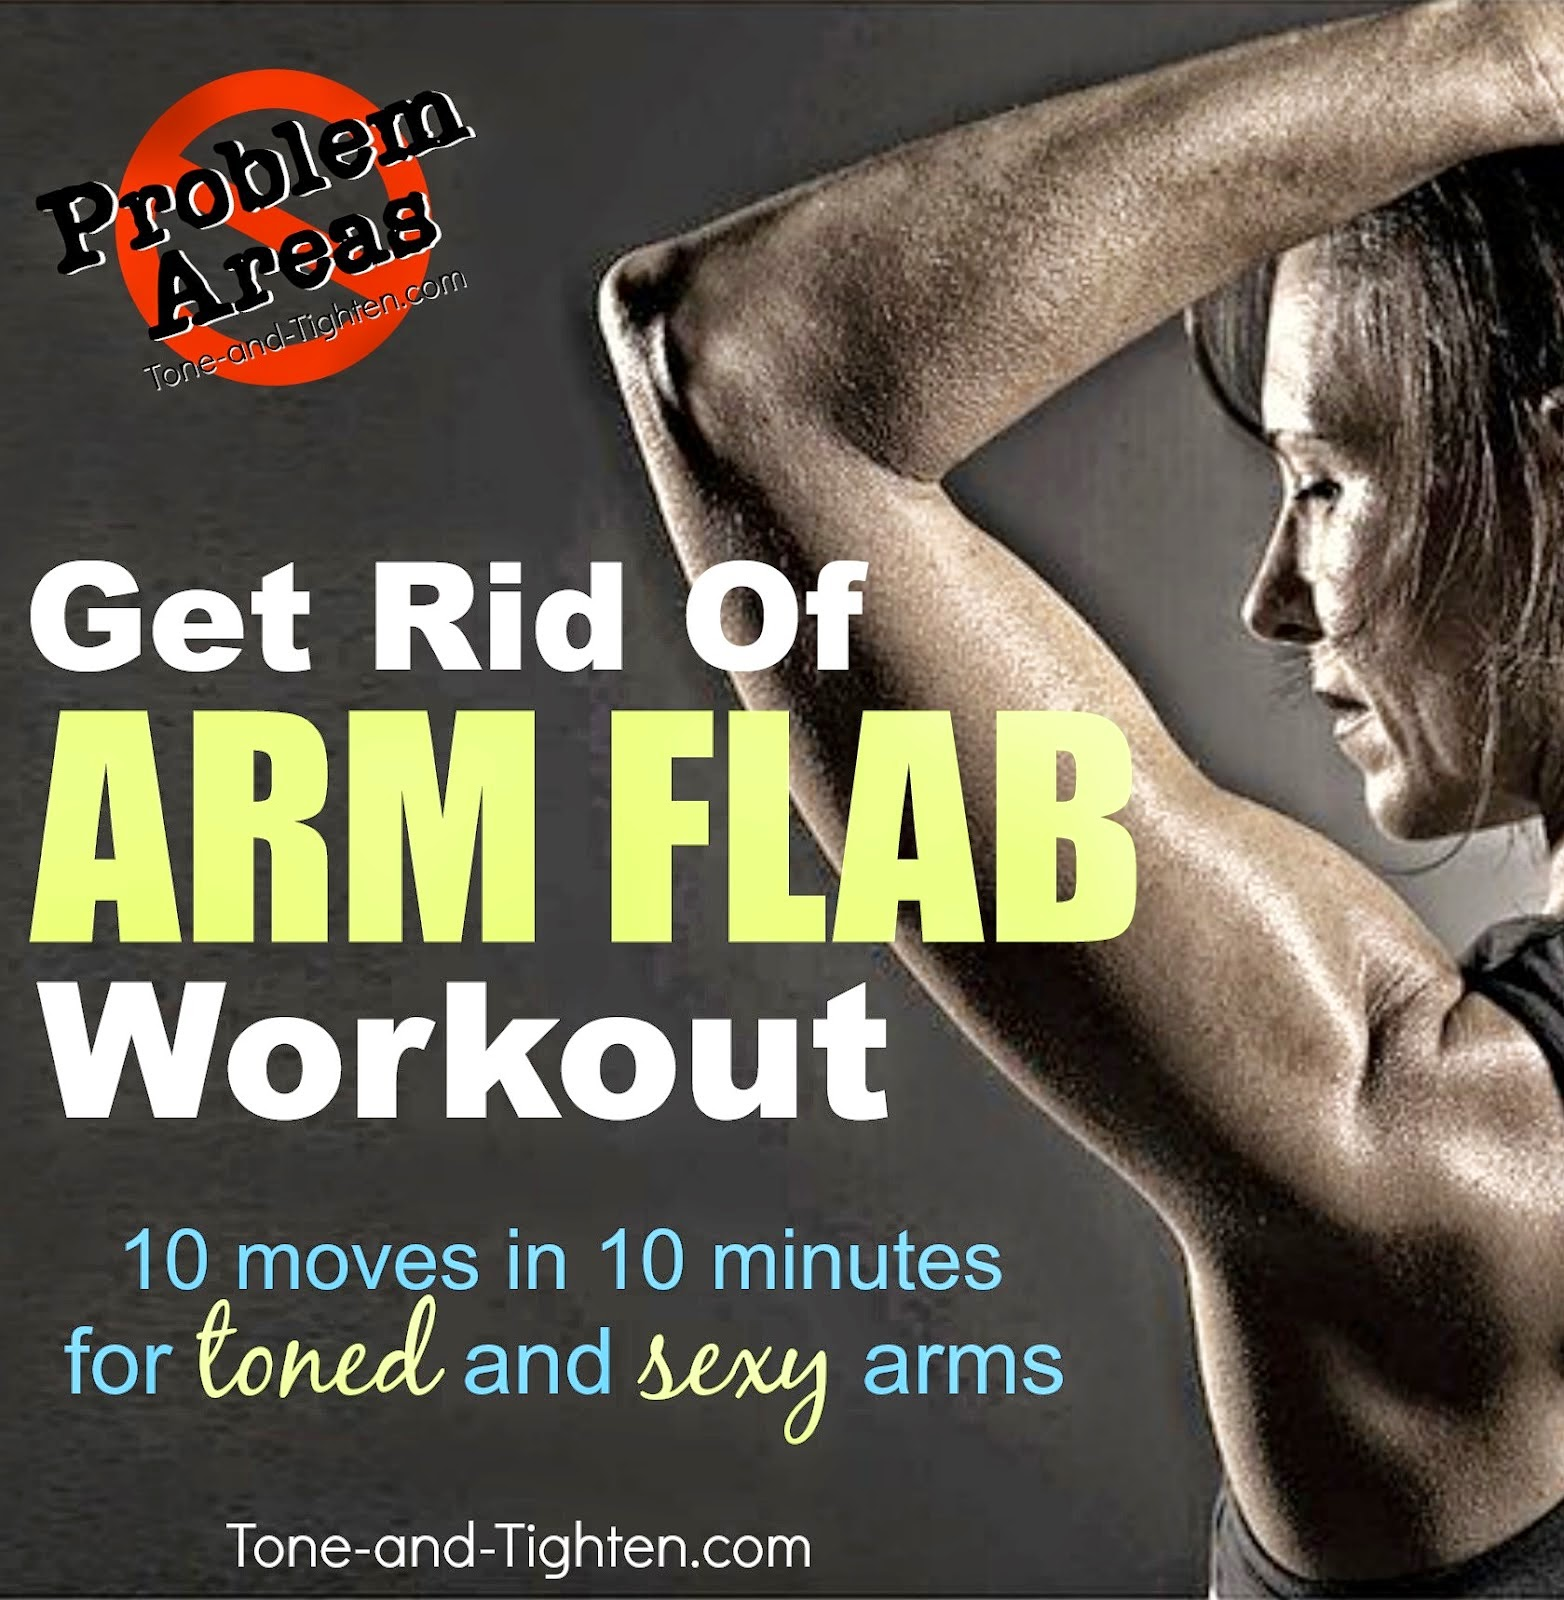 The Best Arm Toning Workout With Dumbbells Tone And Tighten